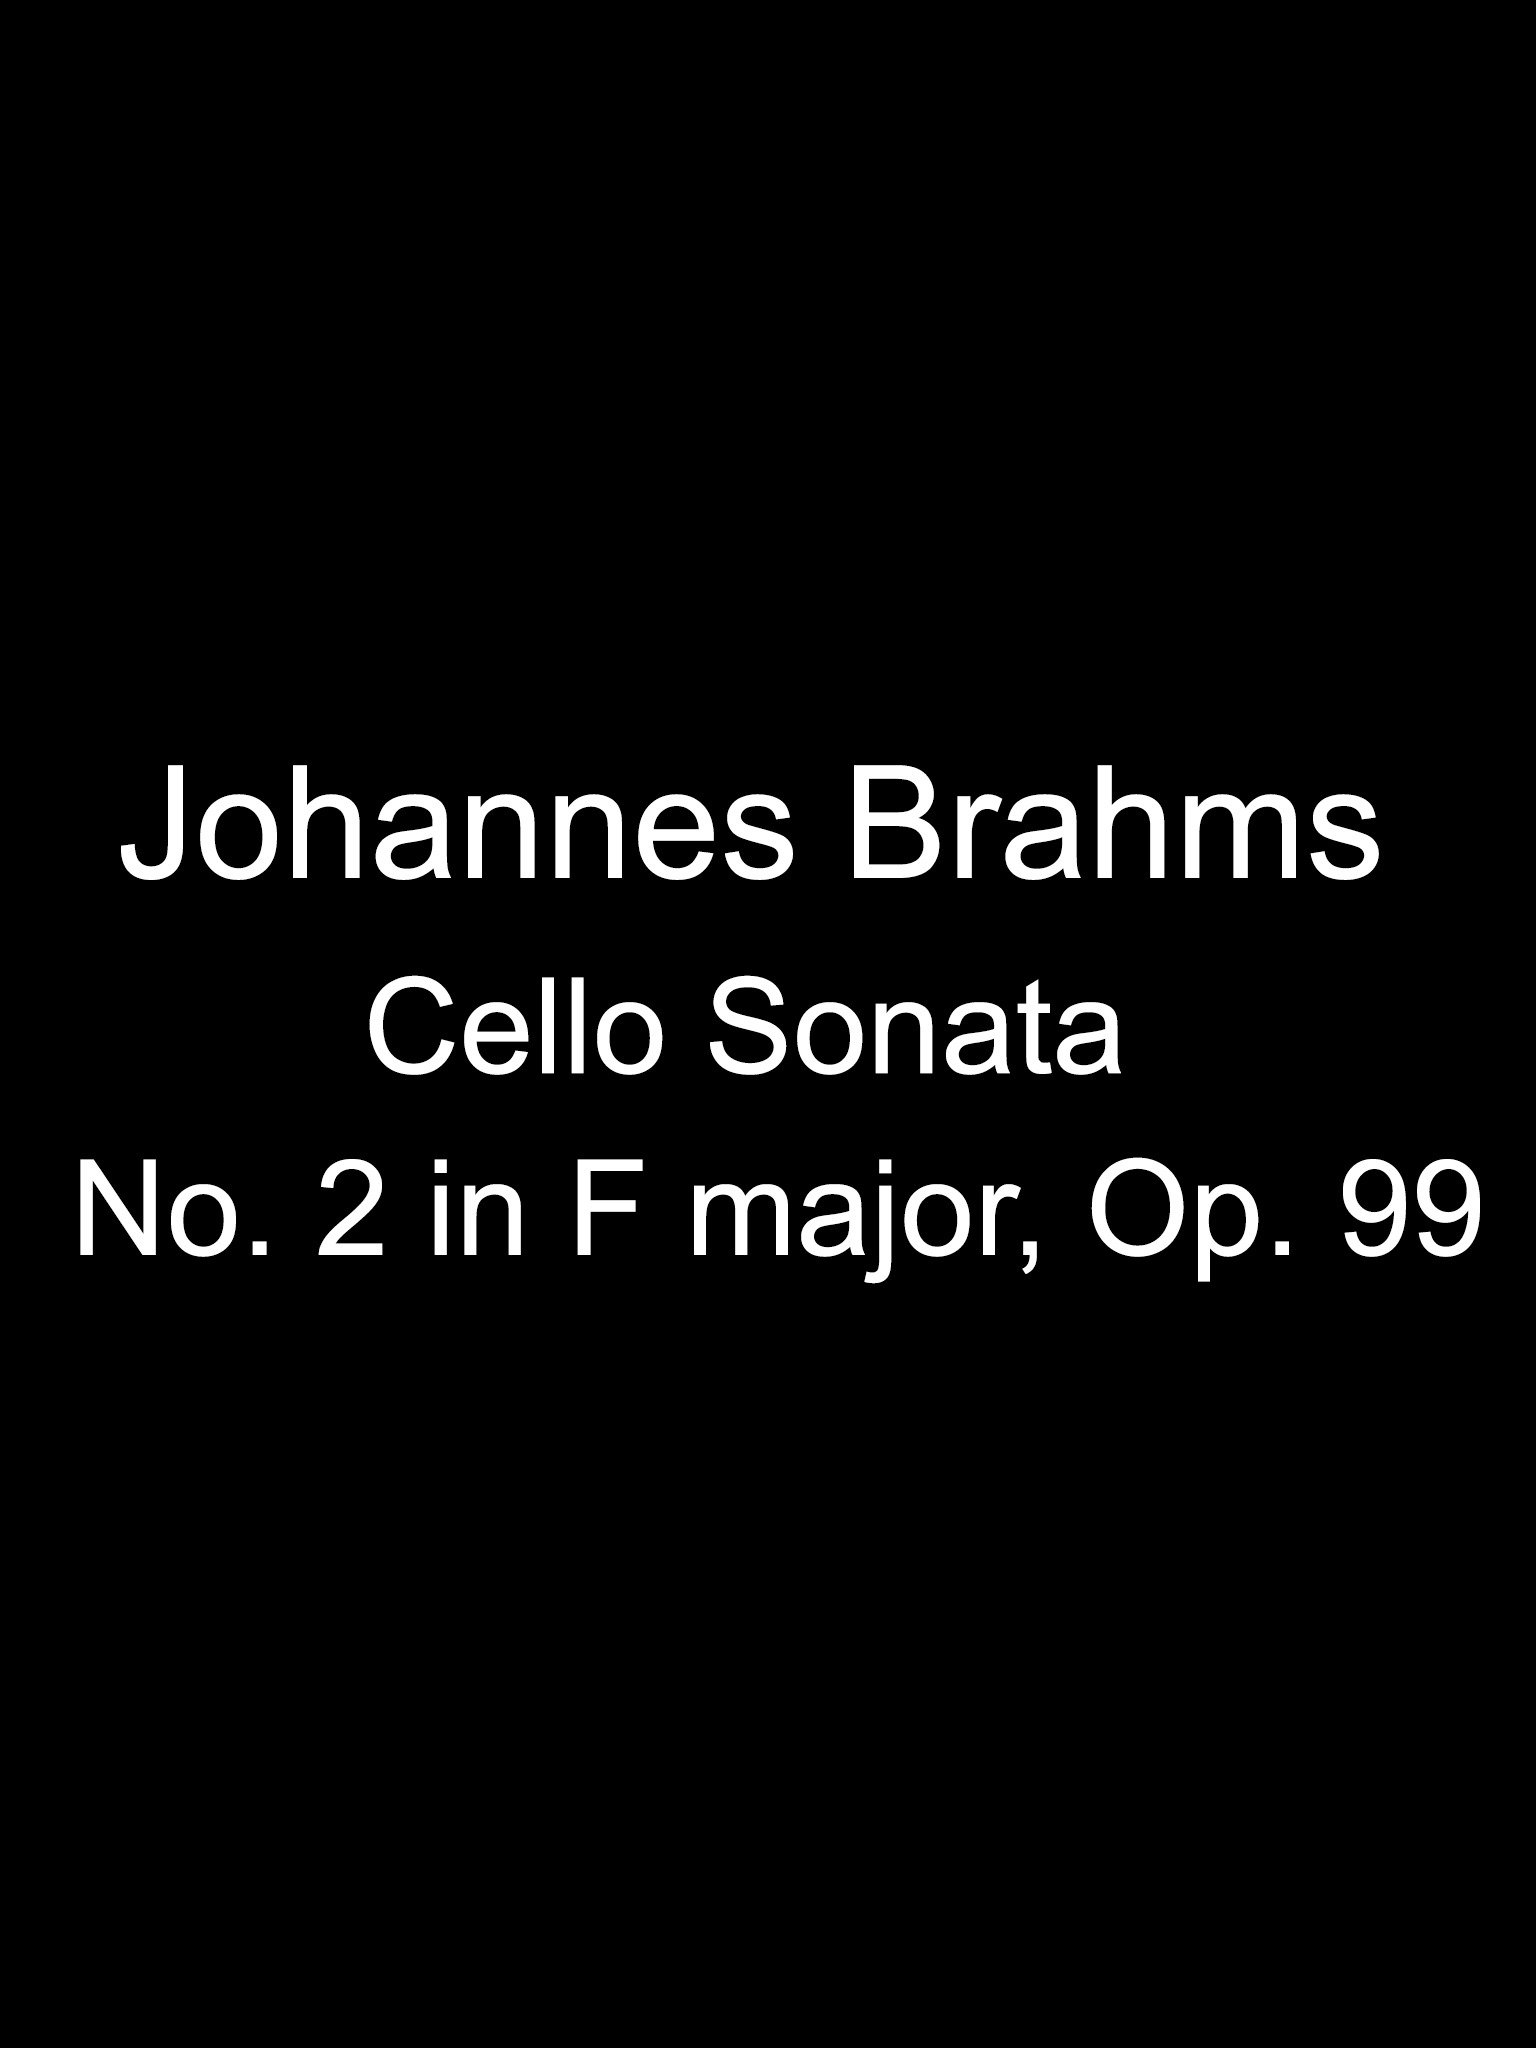 Johannes Brahms' Cello Sonata No. 2 in F major, Op. 99